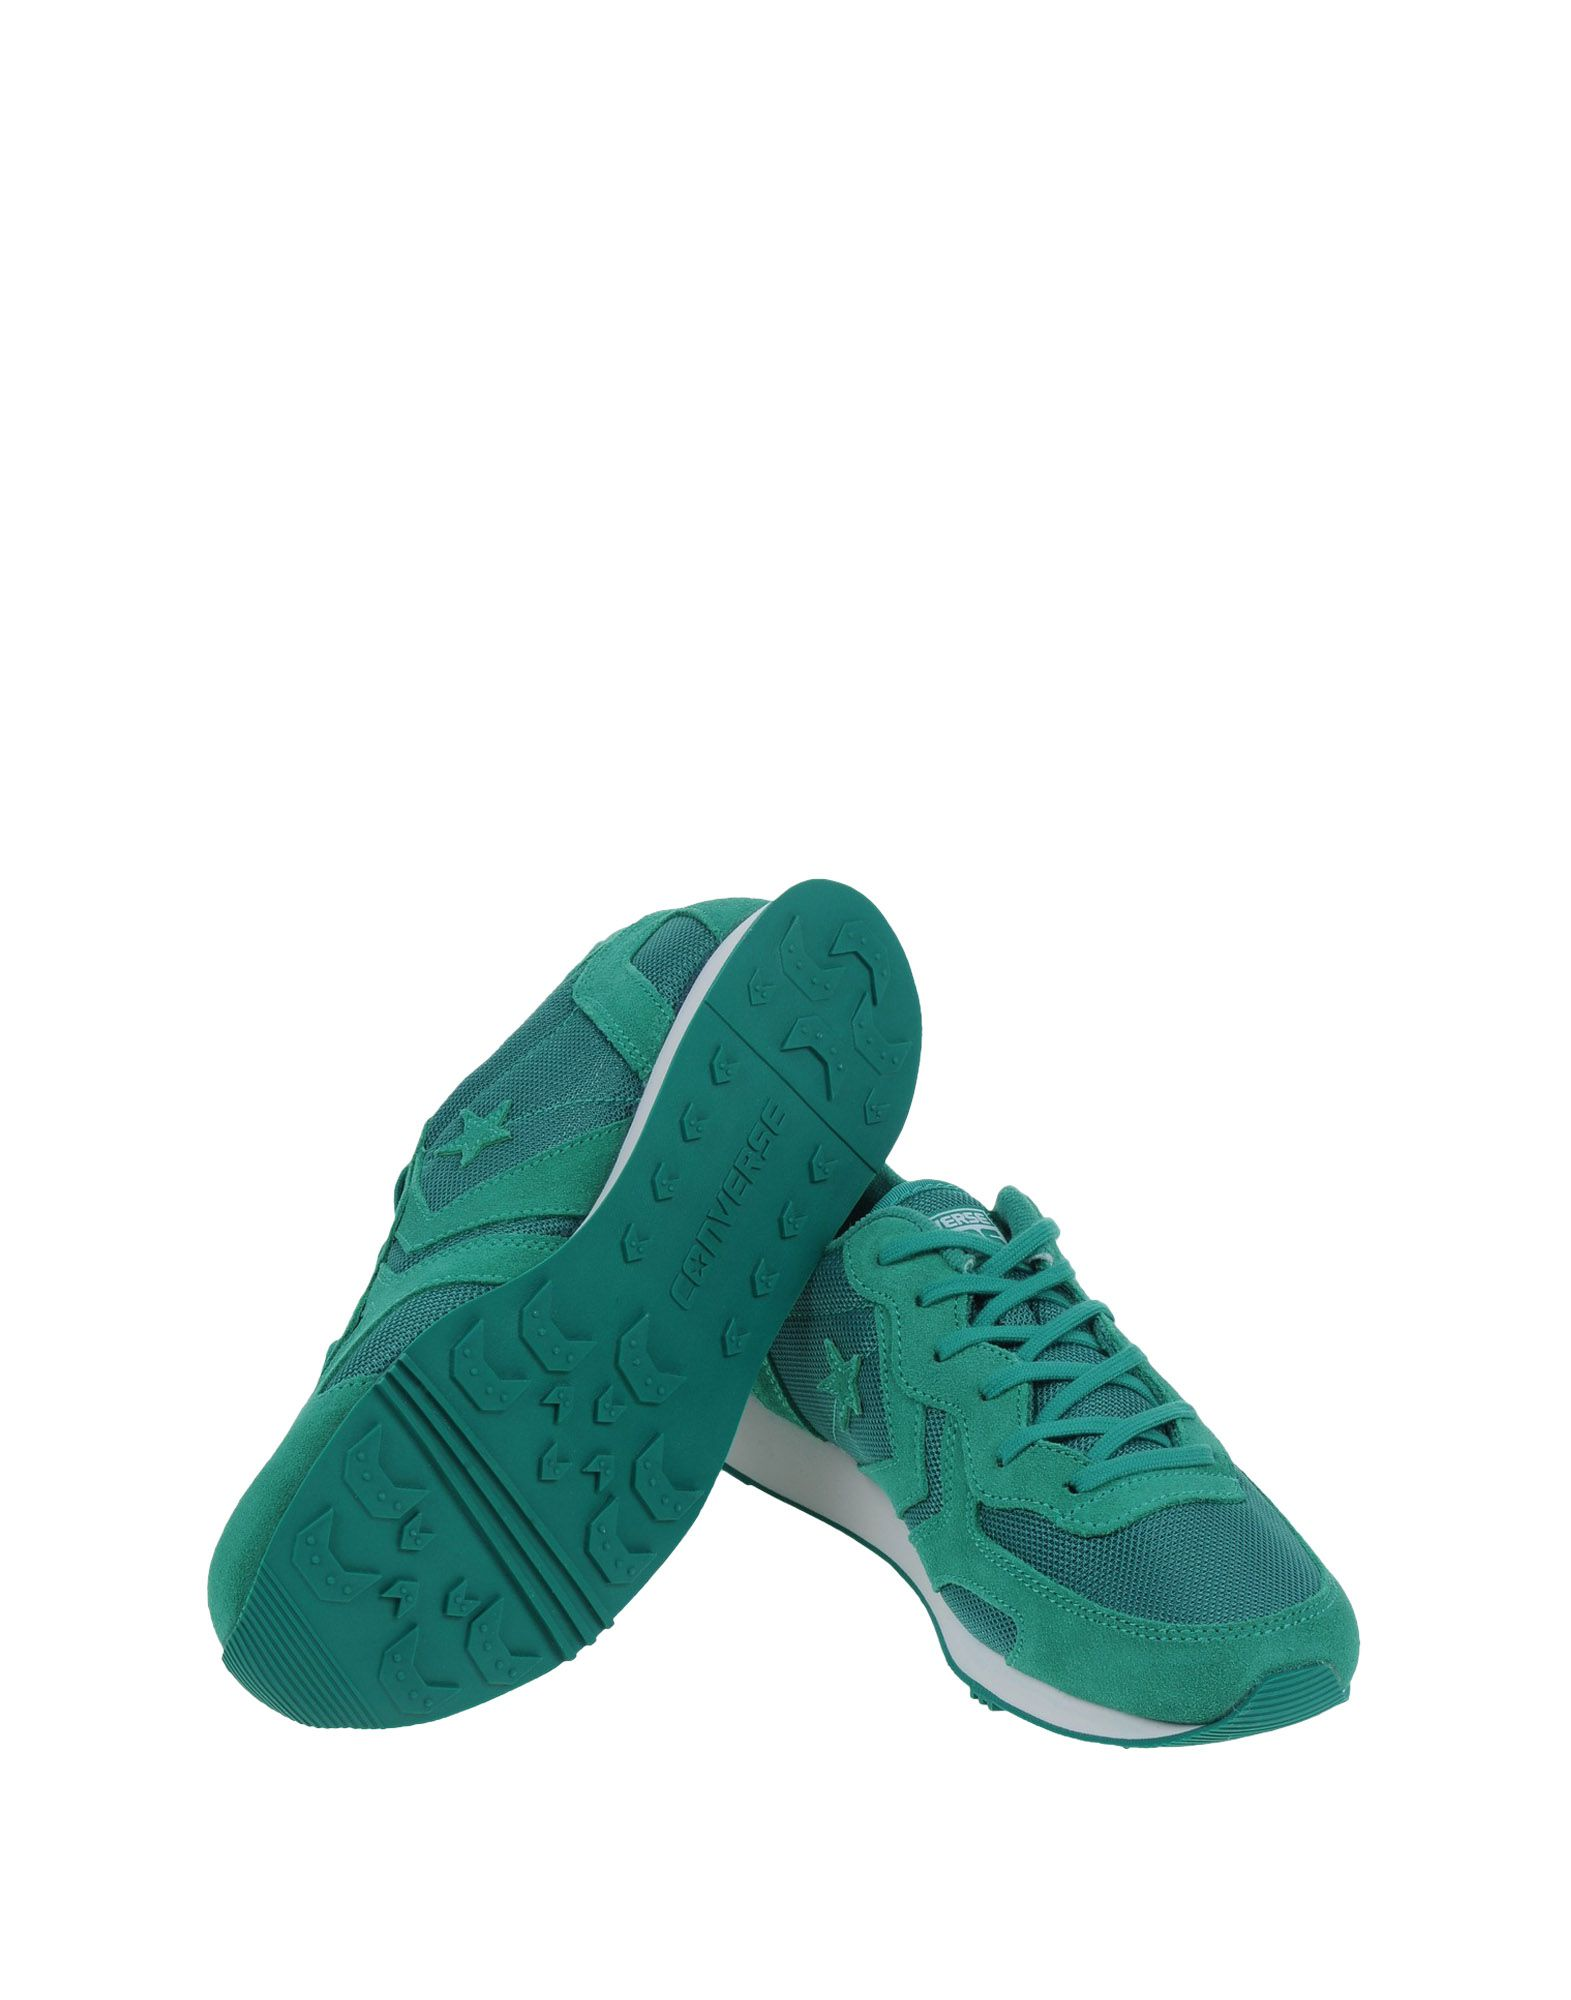 Sneakers Converse Cons Auckland Racer Ox Mesh/Suede - Homme - Sneakers Converse Cons sur